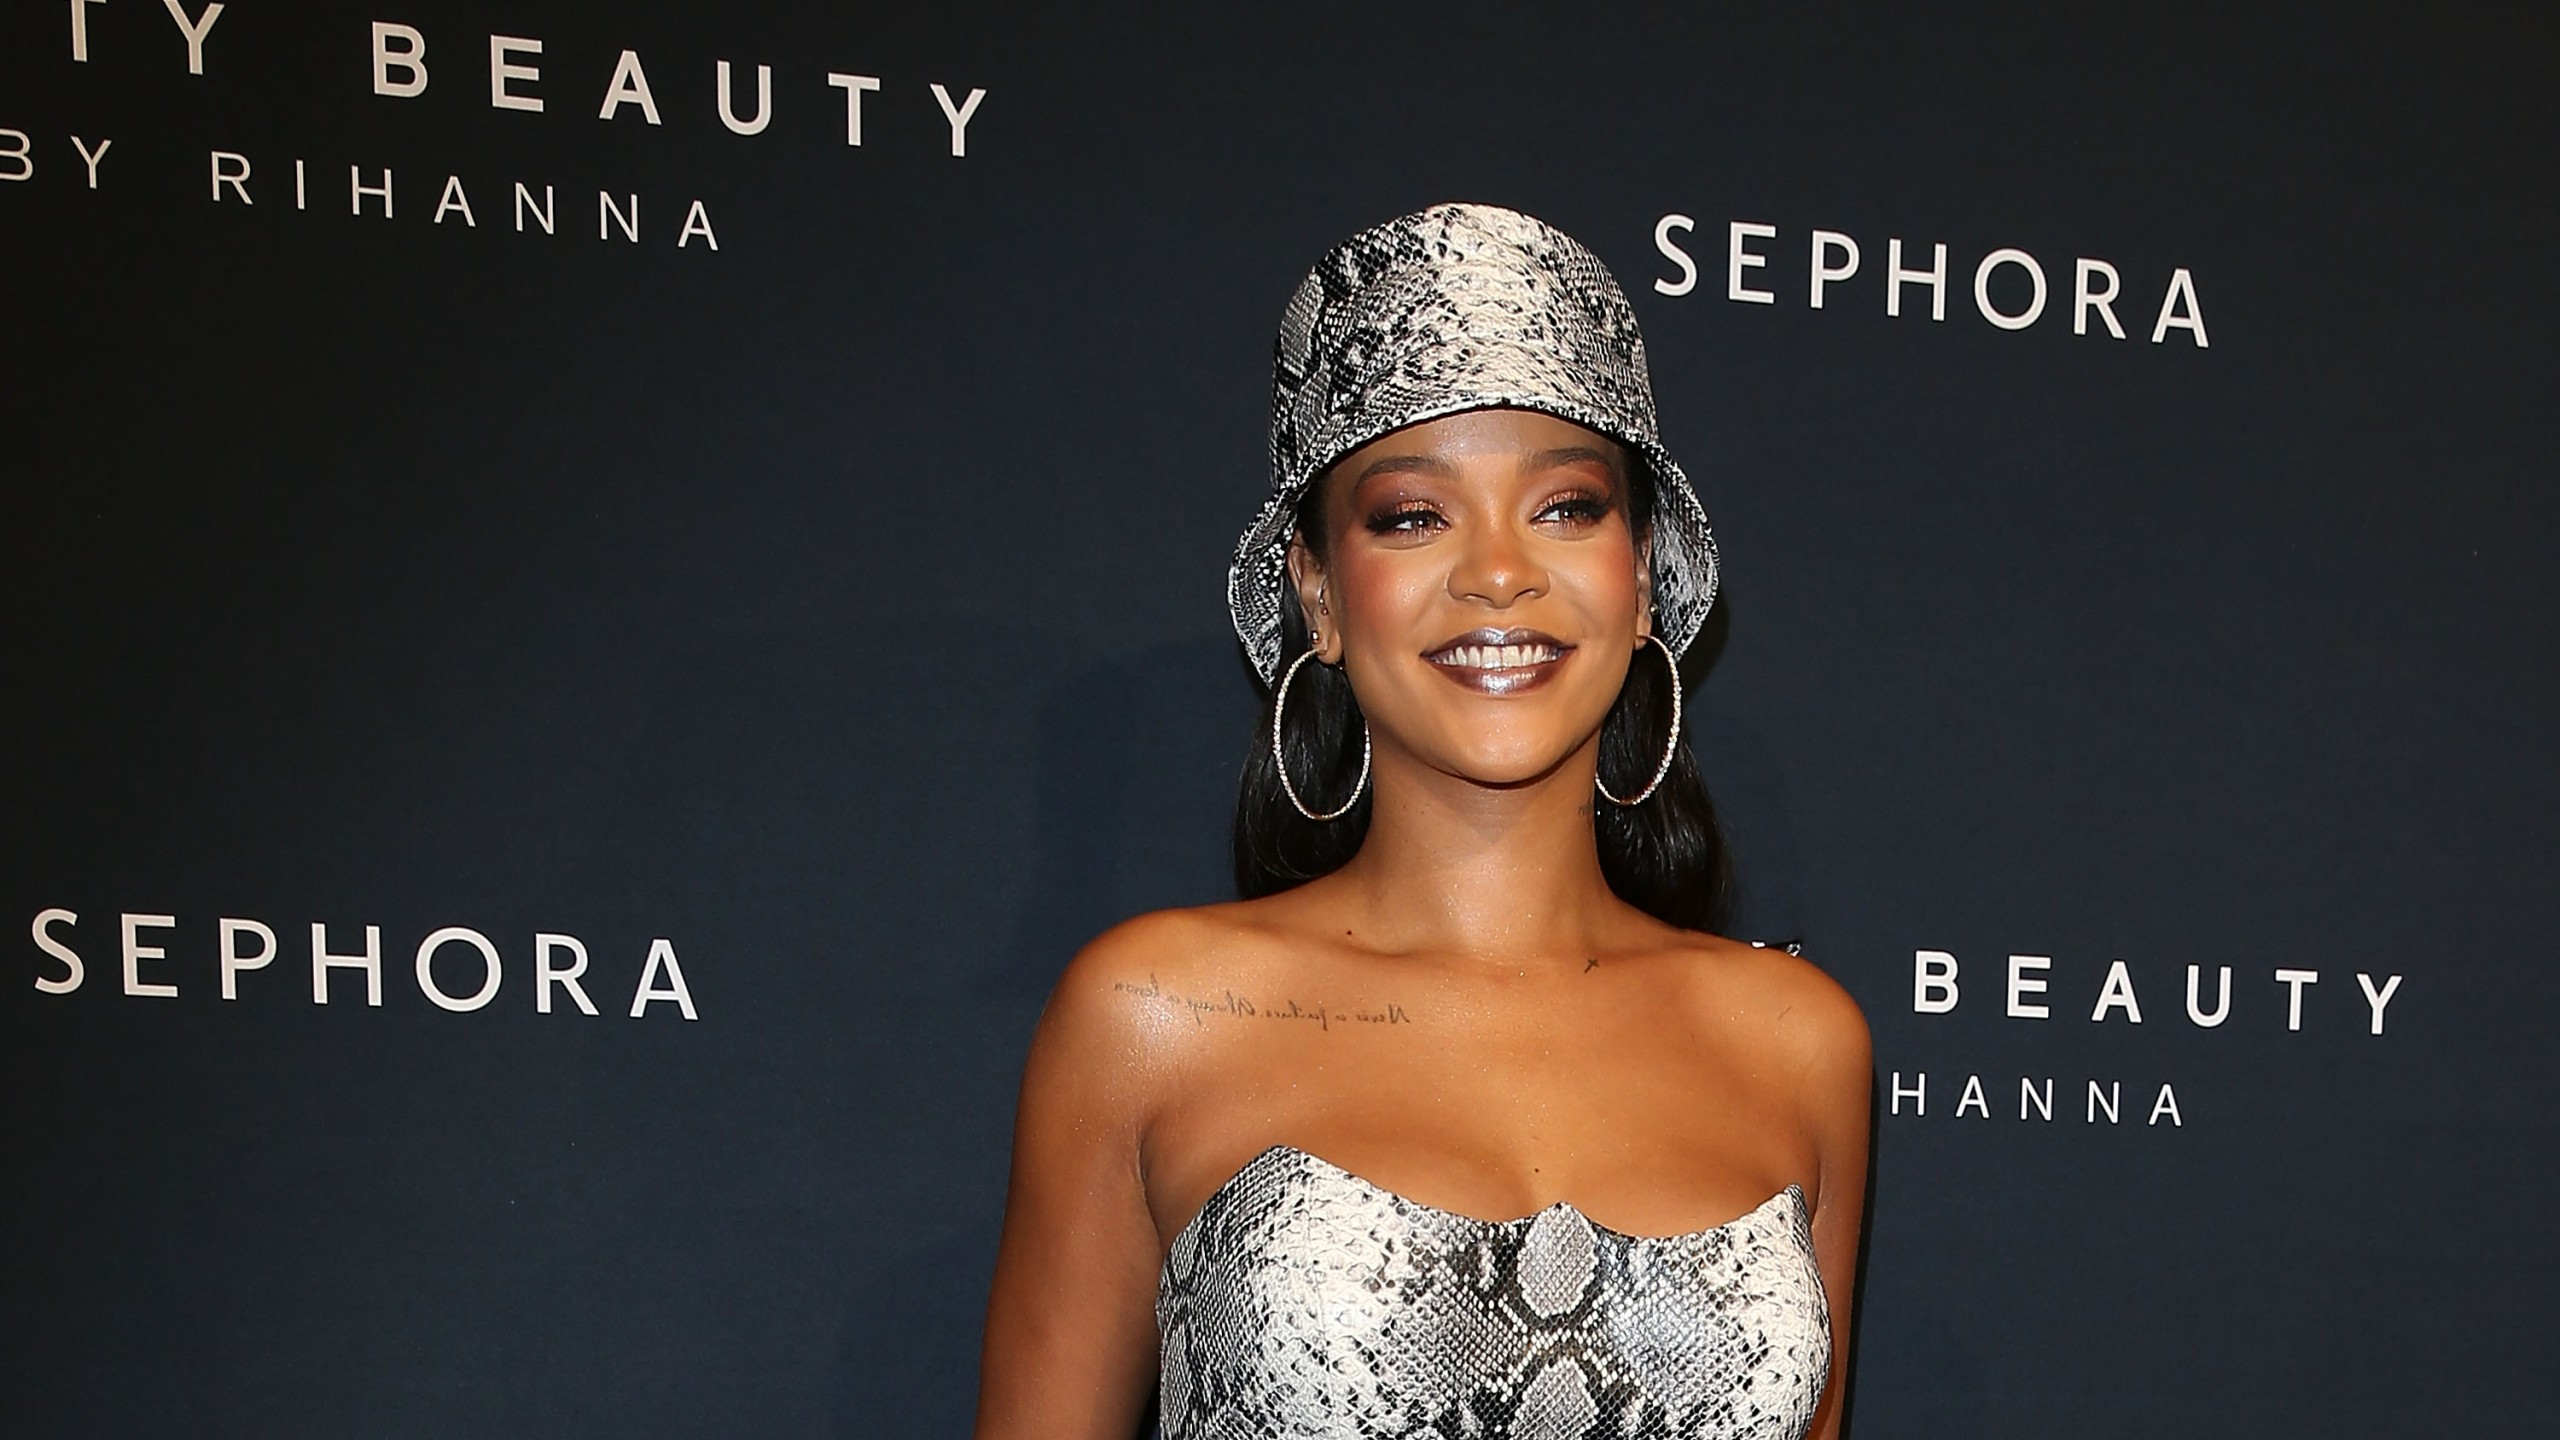 Rihanna attends an event in Sydney, Australia on Oct. 3, 2018. (Credit: Caroline McCredie/Getty Images for Fenty Beauty by Rihanna)